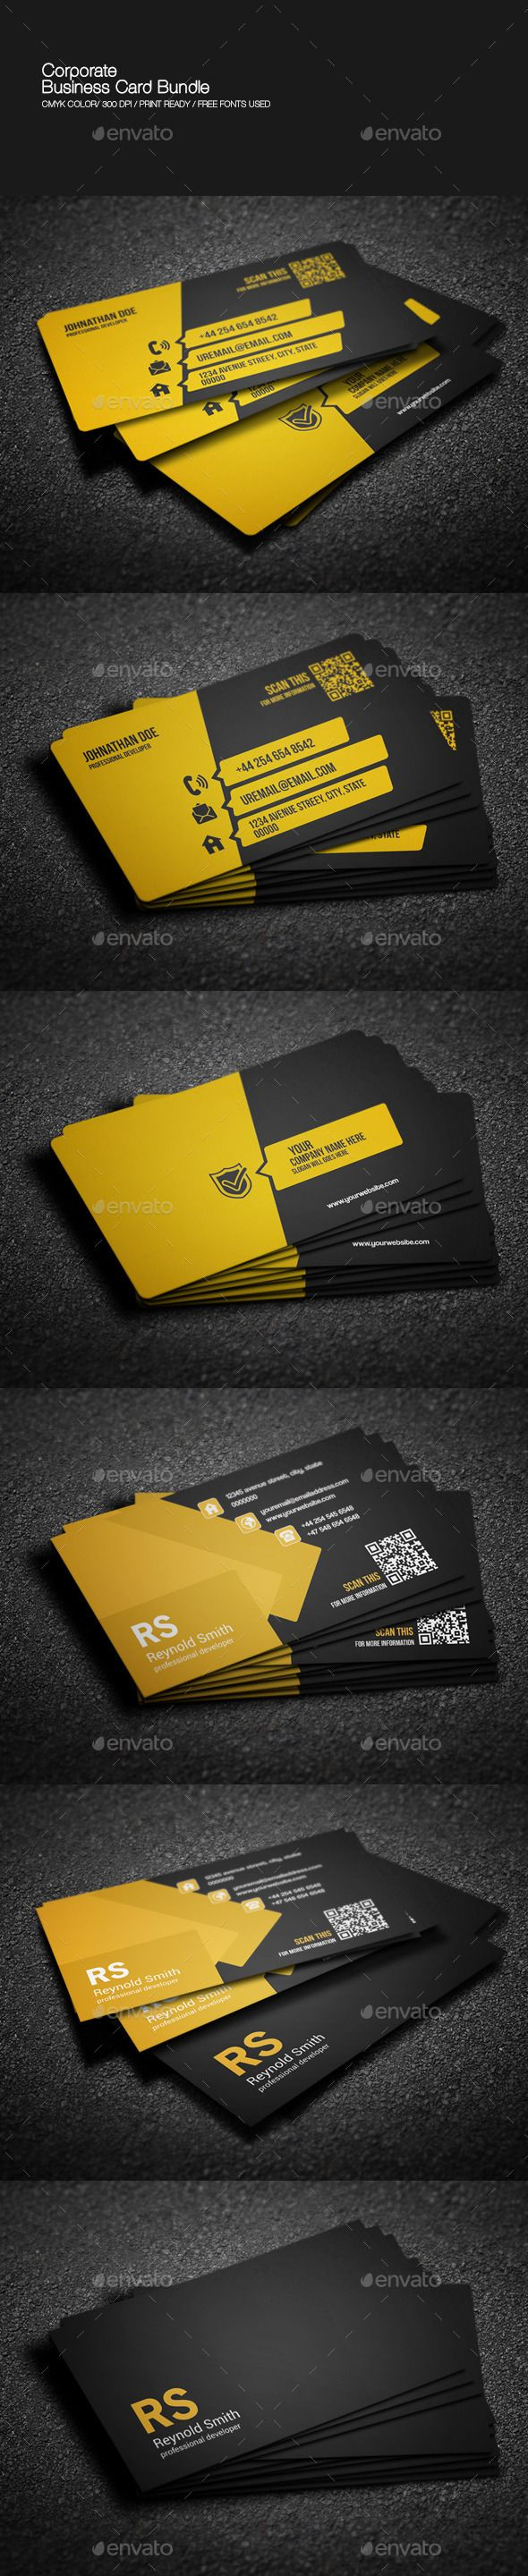 62 Best Security Business Card Images On Pinterest Business Card